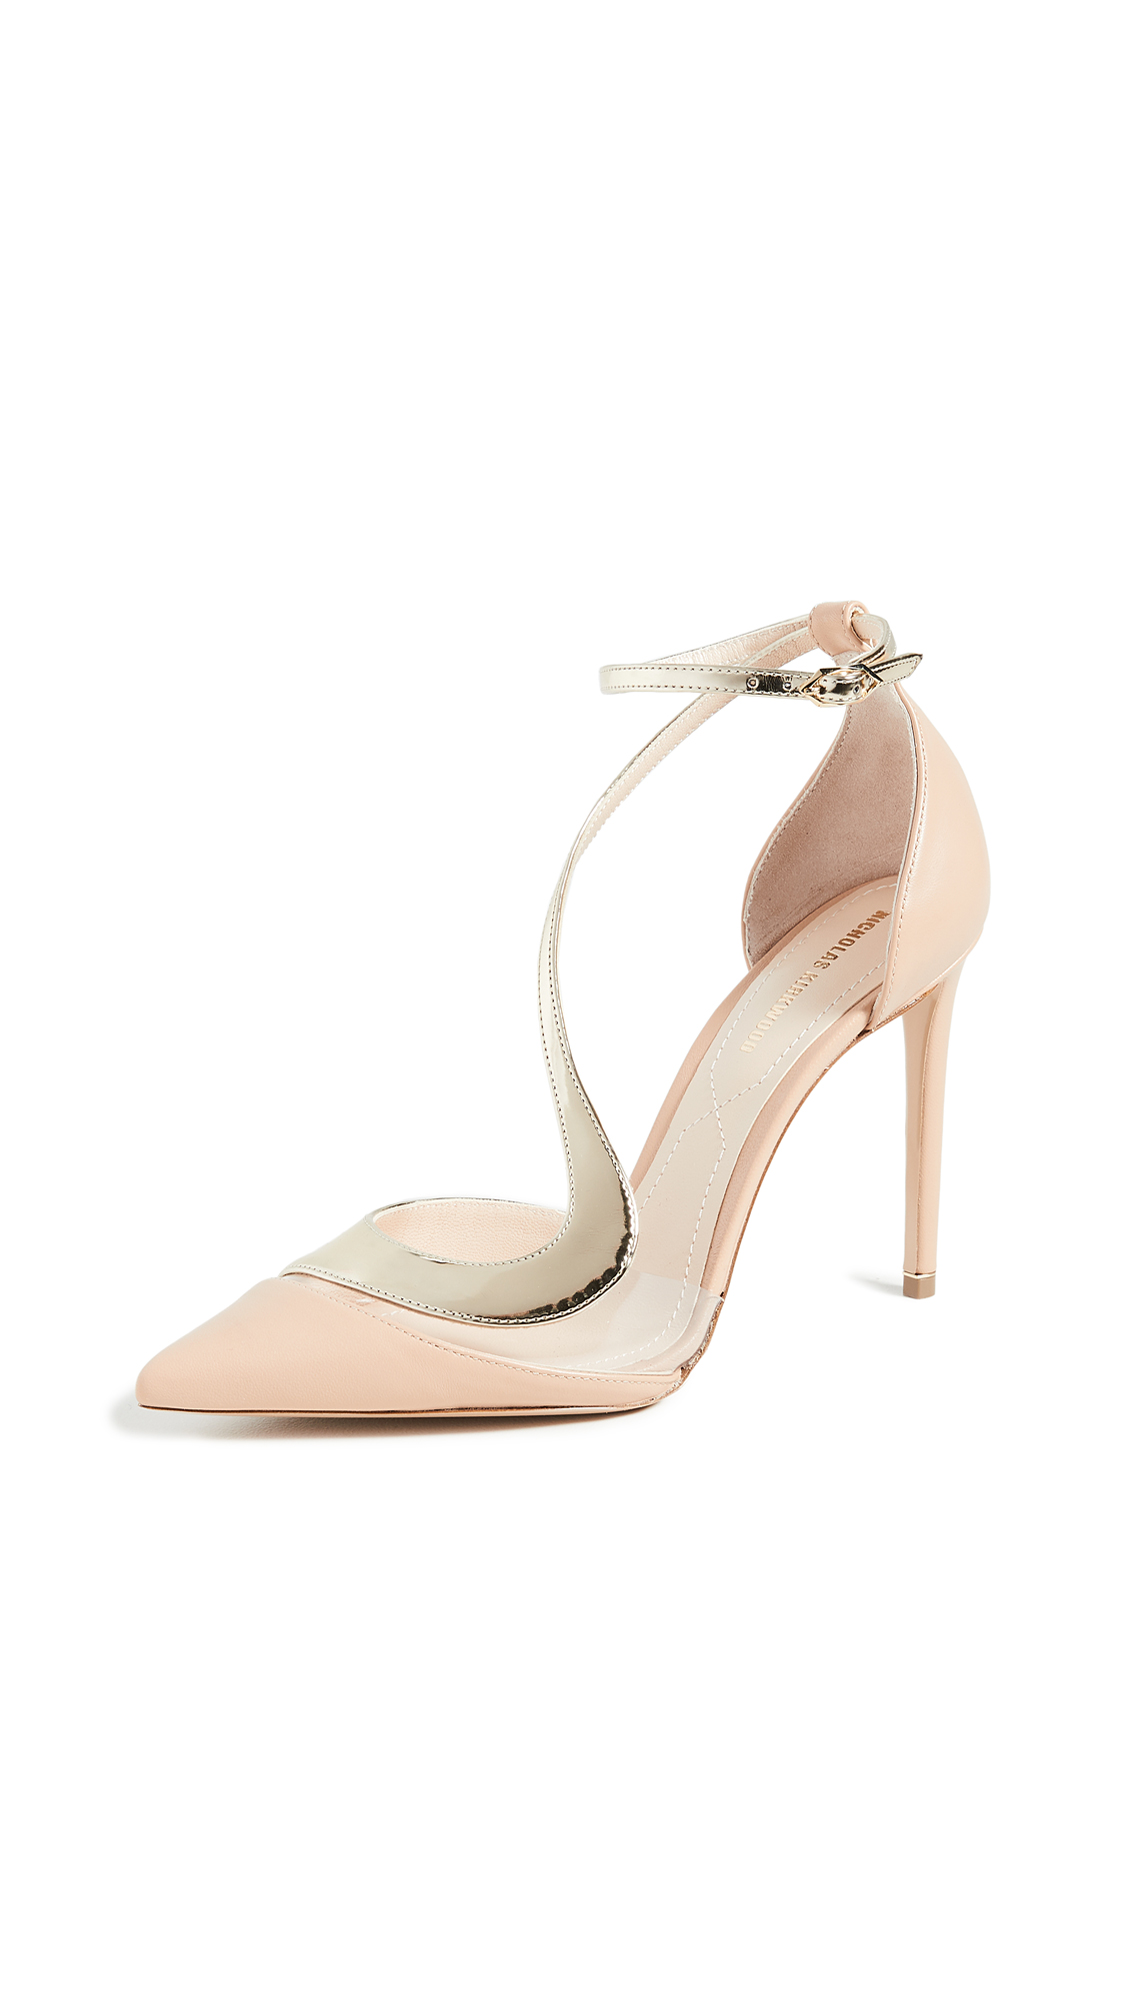 Nicholas Kirkwood S Pumps - 60% Off Sale